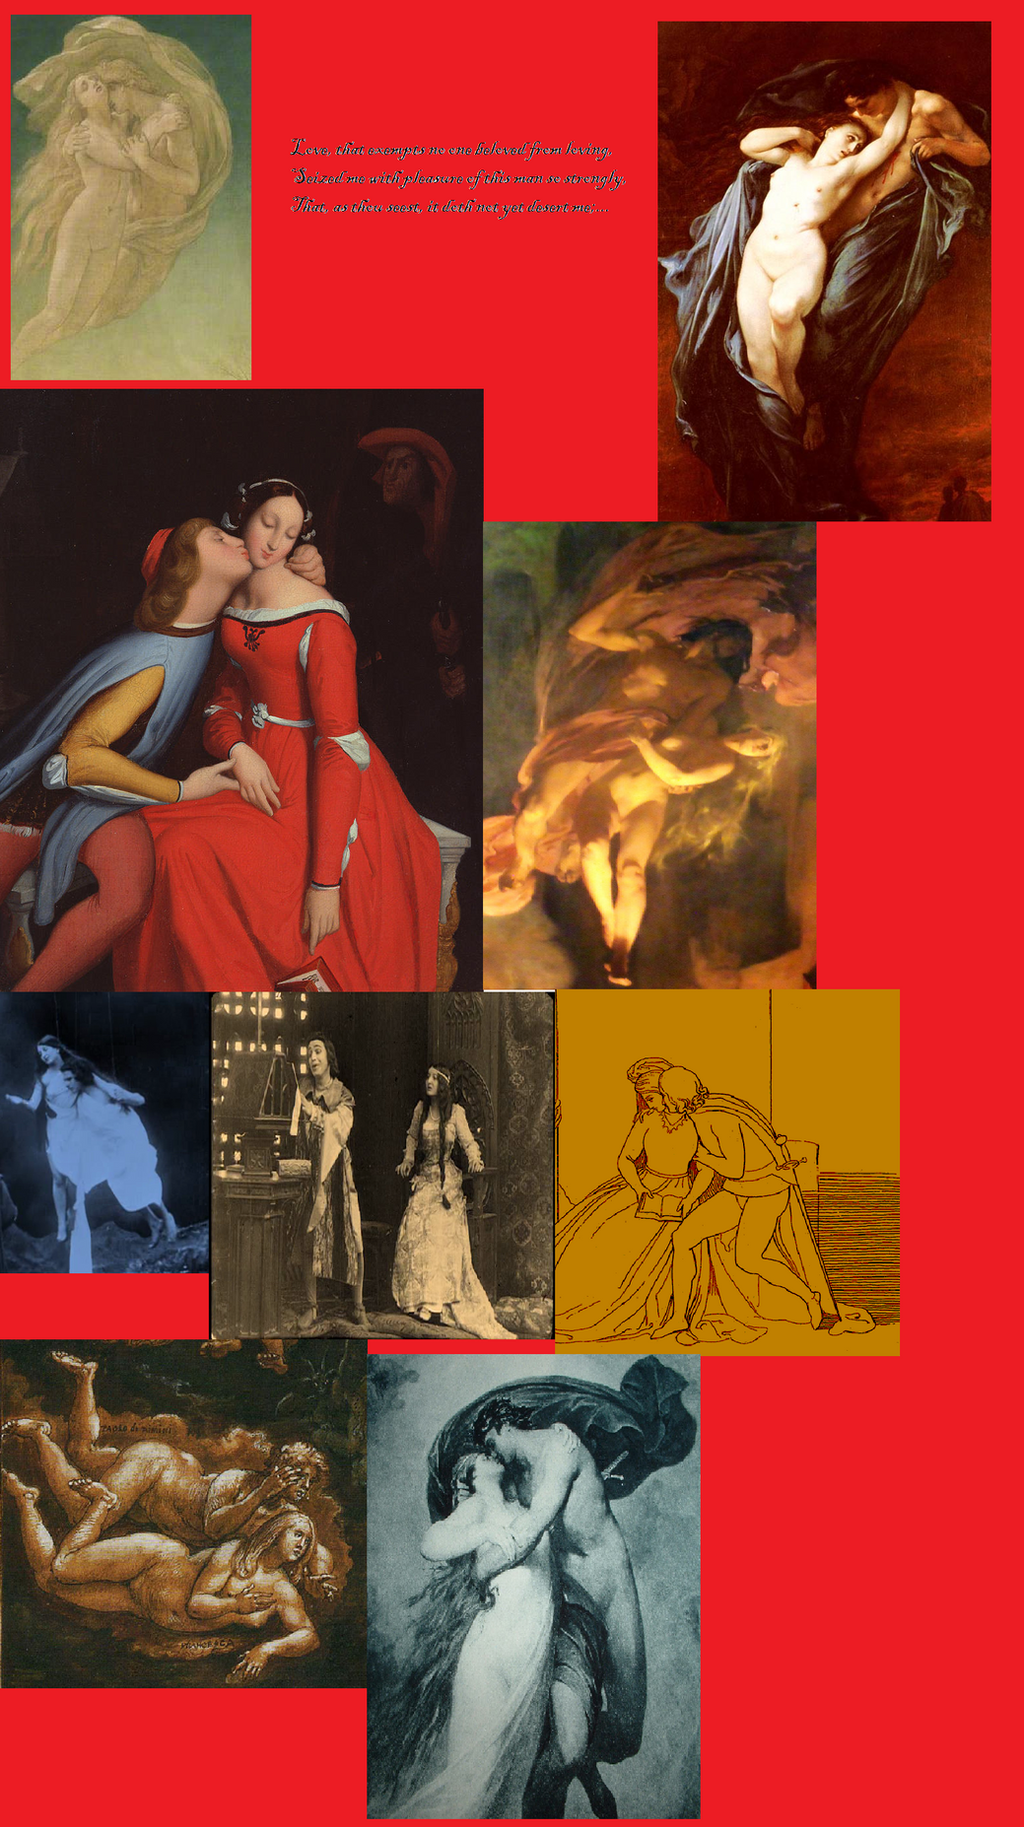 an analysis of the character of francesca da rimini in divine comedy by dante alighieri Divine comedy-i: inferno study guide contains a biography of dante alighieri, literature essays, quiz questions, major themes, characters, and a full summary and analysis.